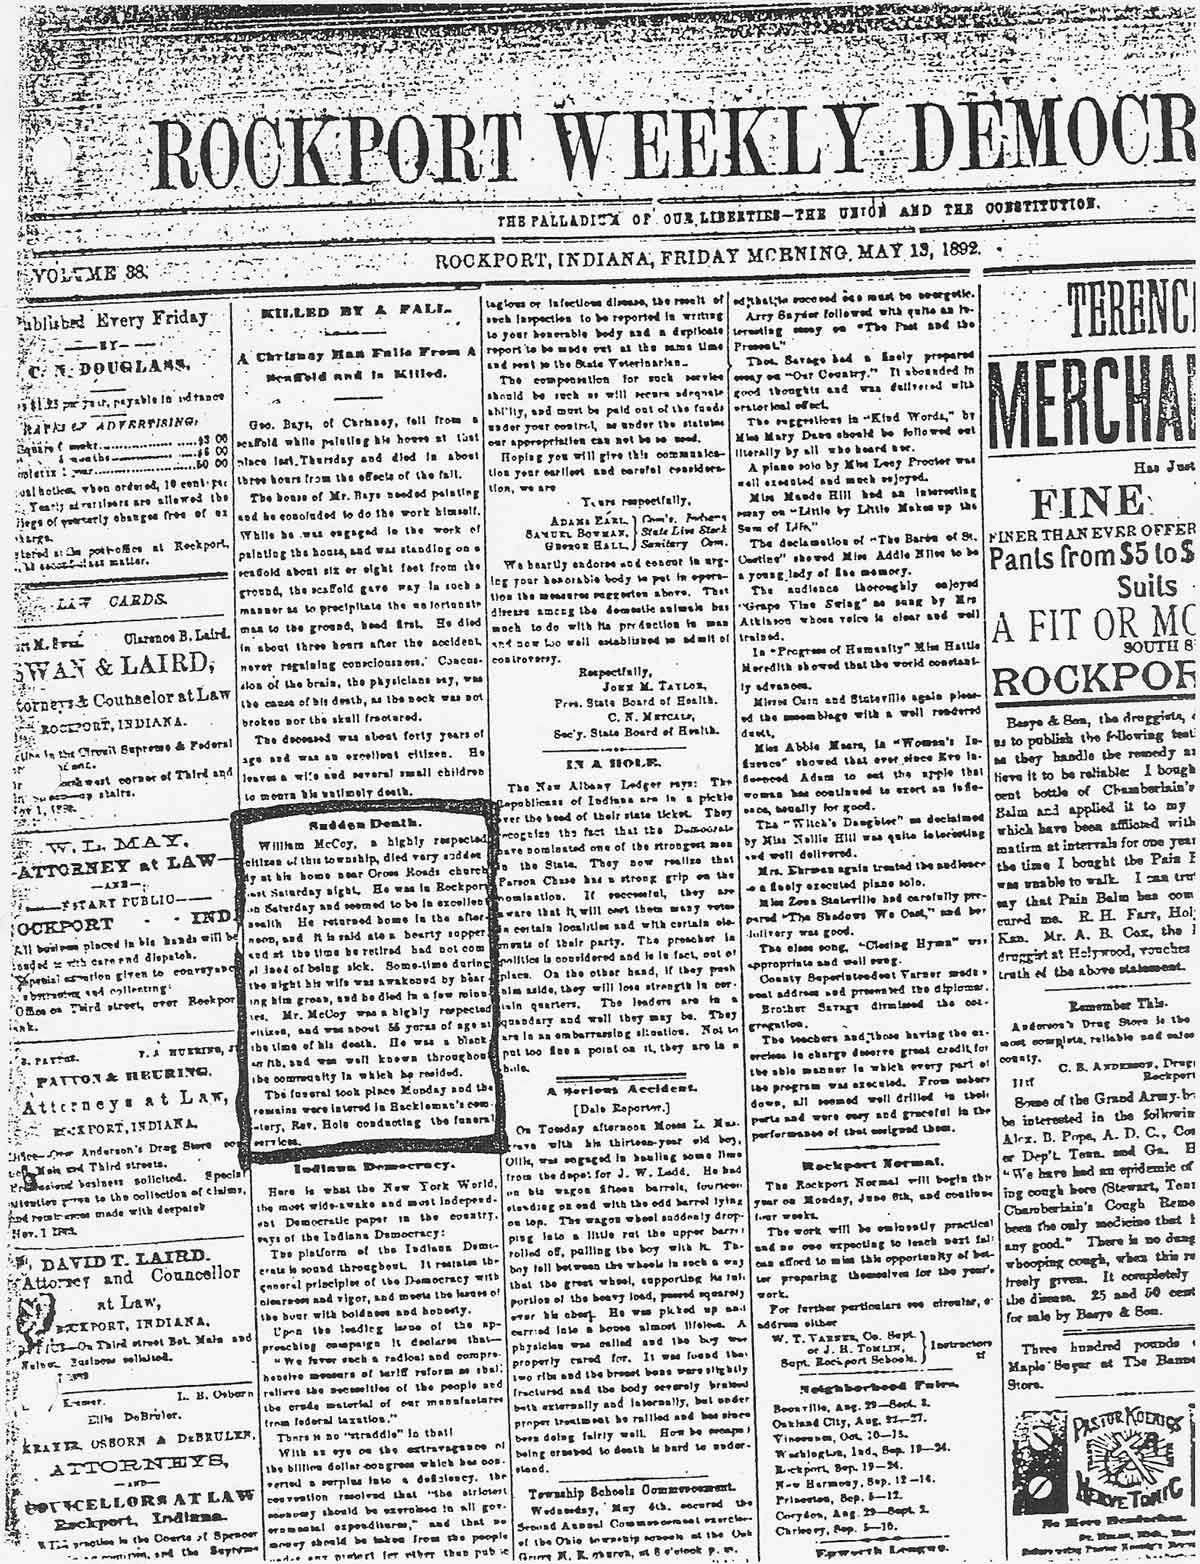 Indiana spencer county rockport - Mccoy William Death Rockport Newspaper With An Article Of His Sudden Death